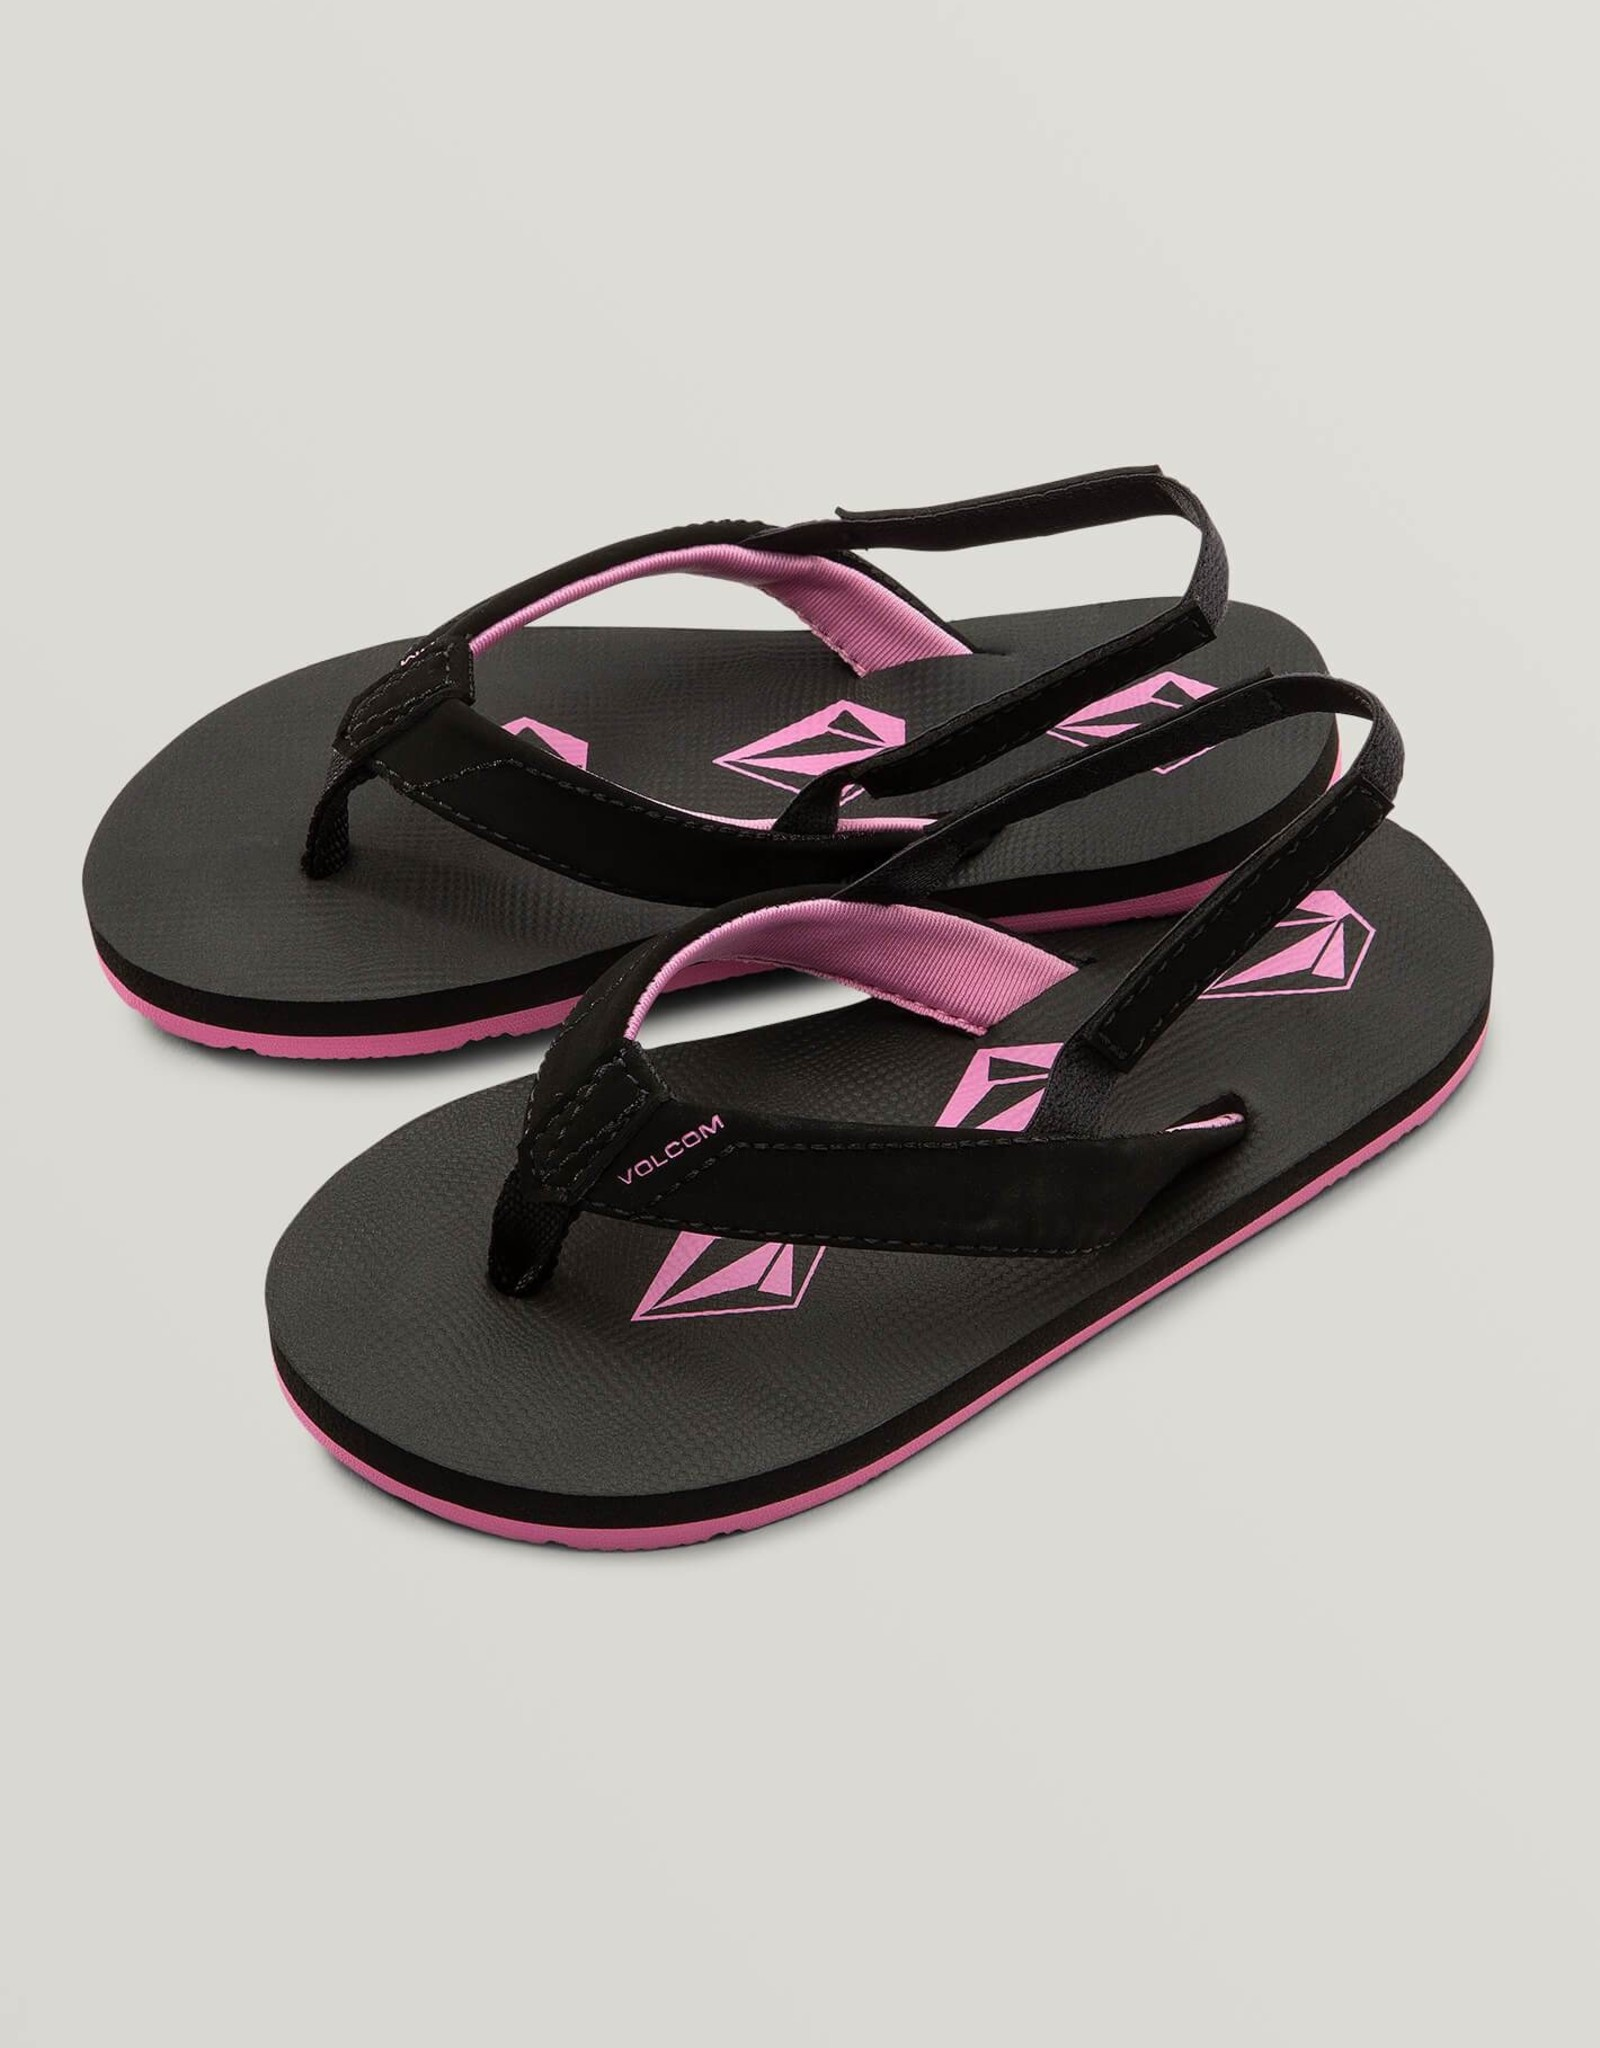 Volcom Vicky Sandal - Sea Glass or Black Out